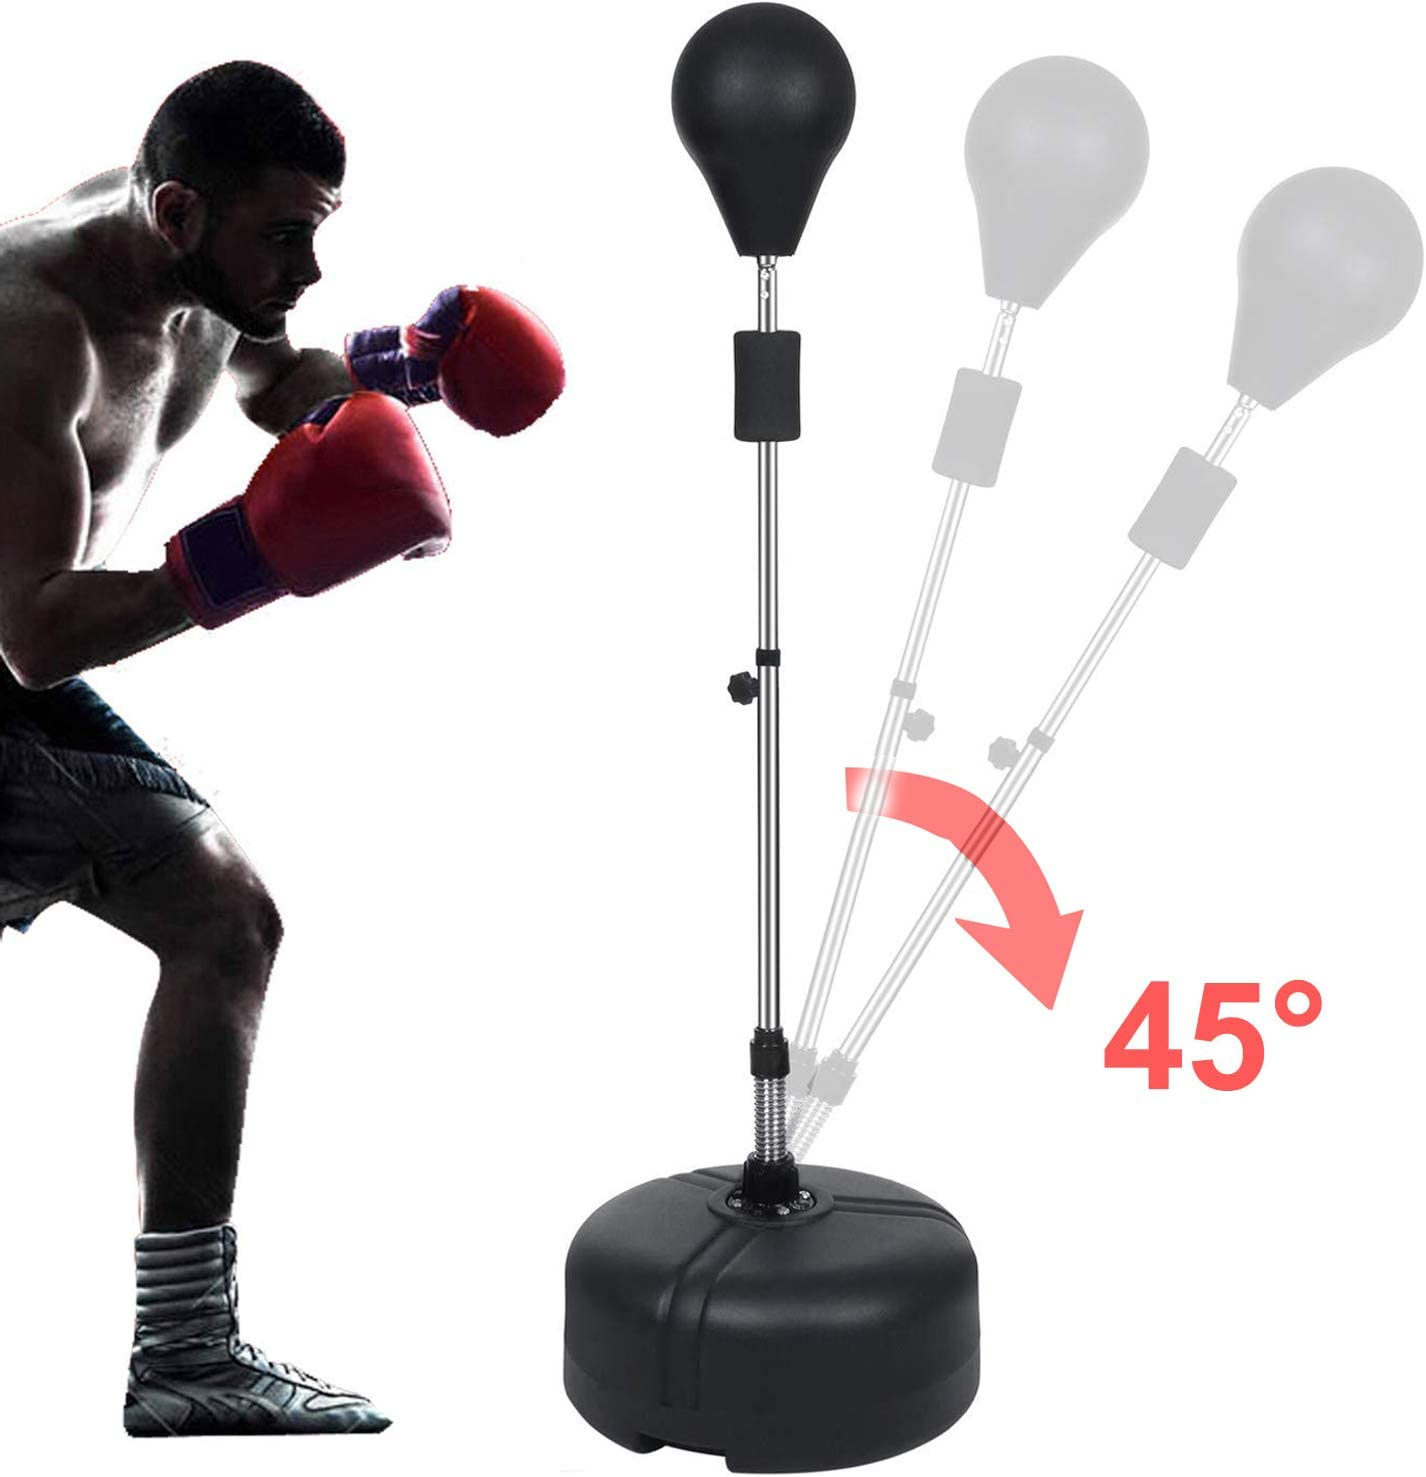 Hurbo Boxing Punching Bag with Stand Reflex Speed Punching Bag Adjustable Height for Adults & Teenagers (Black) : Sports & Outdoors